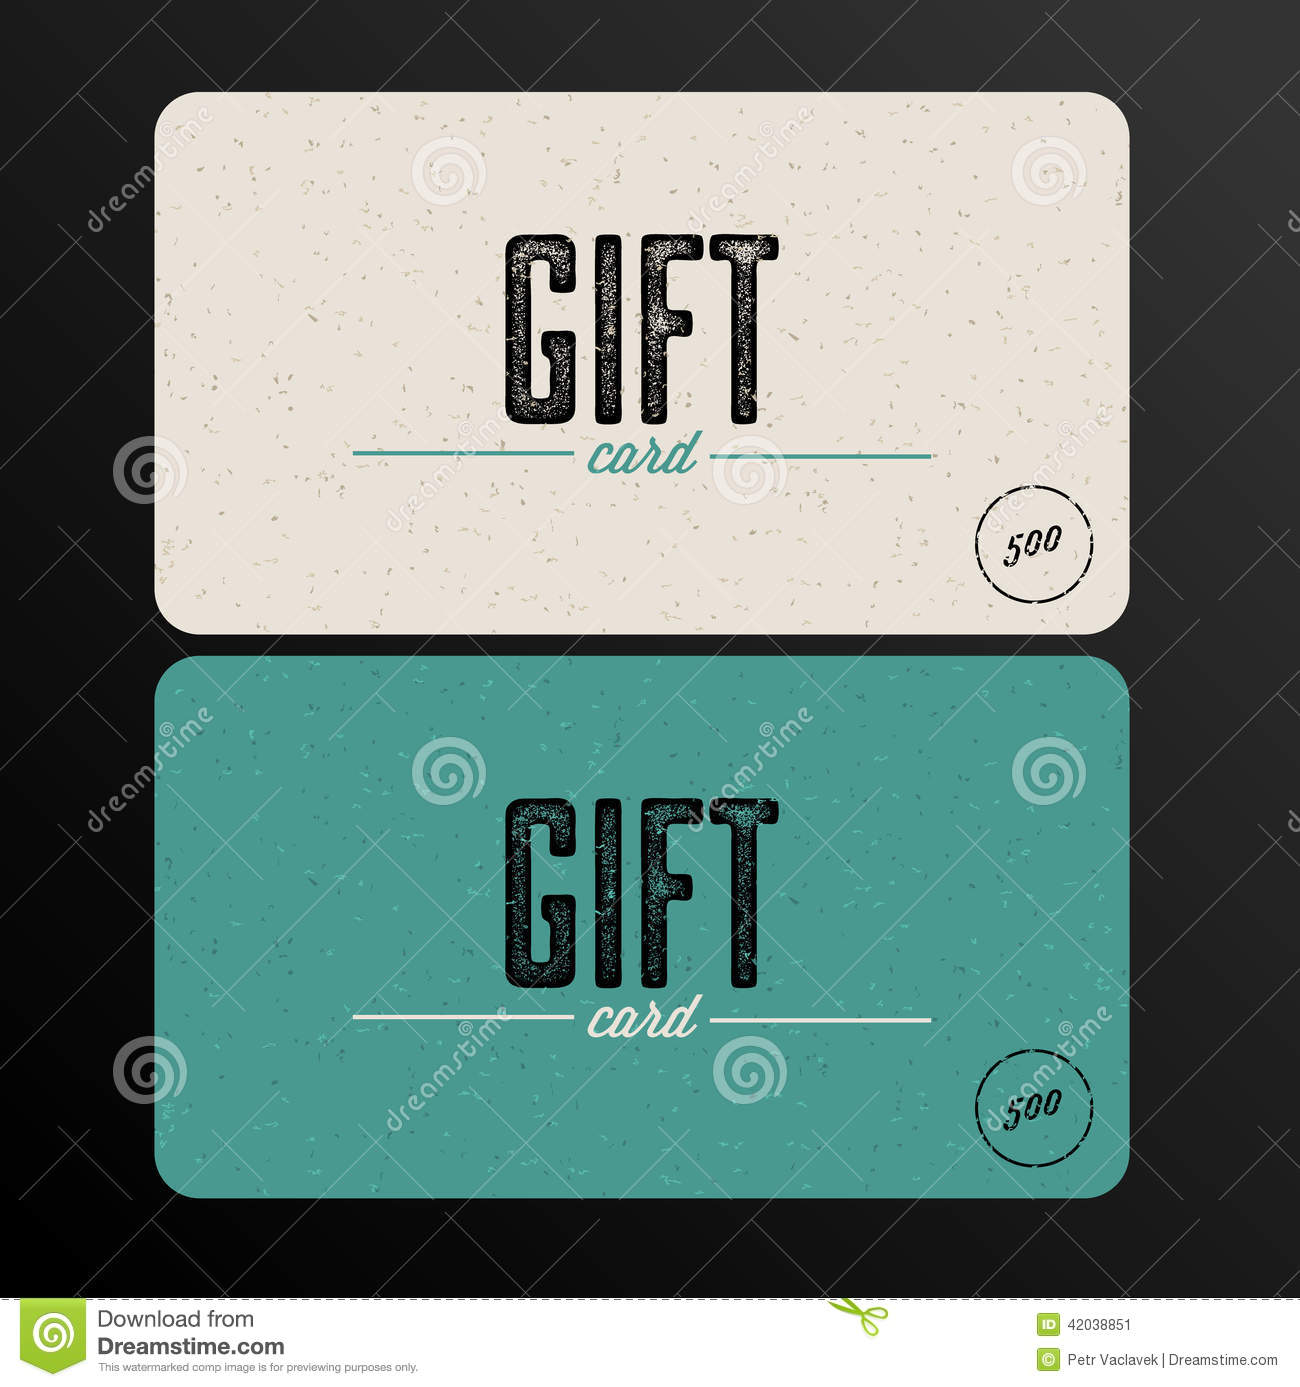 Retro gift card teal template stock illustration illustration of retro gift card teal template yadclub Image collections